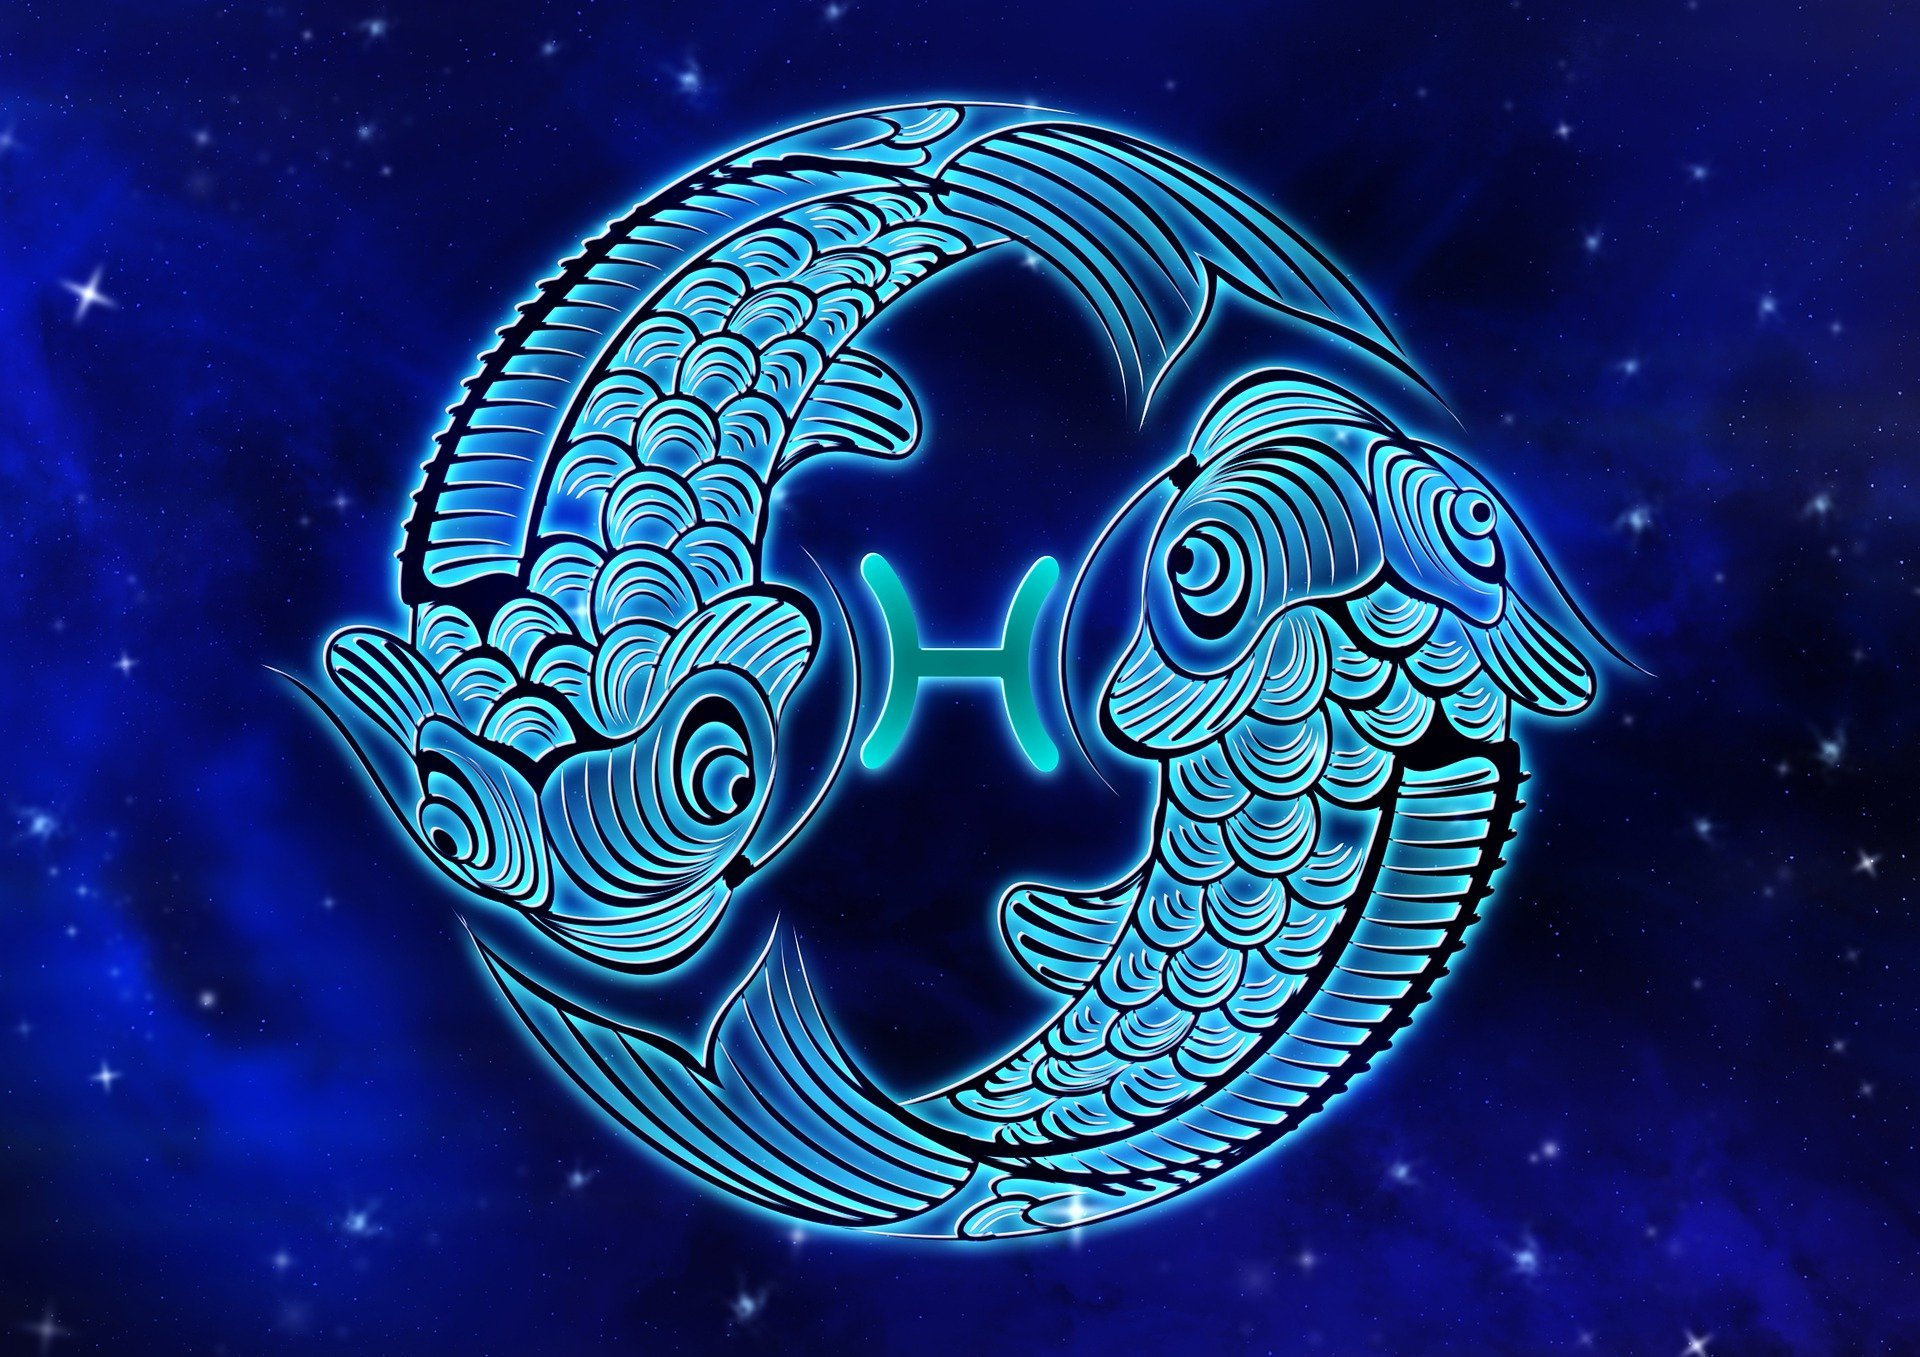 Pictured - A depiction of a Pisces star sign | Source: Pixabay